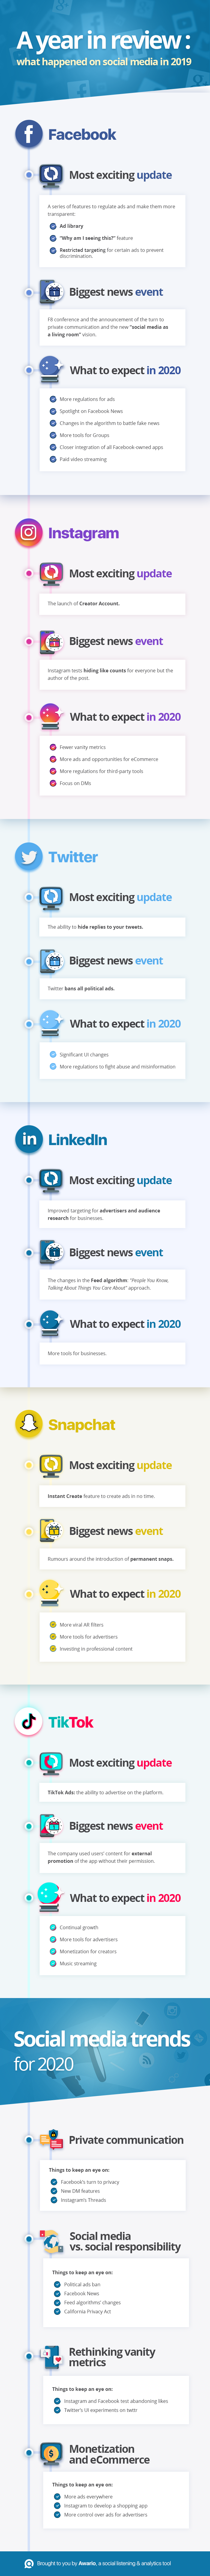 A Year in Review: What Happened on Social Media in 2019 [Infographic]   DeviceDaily.com